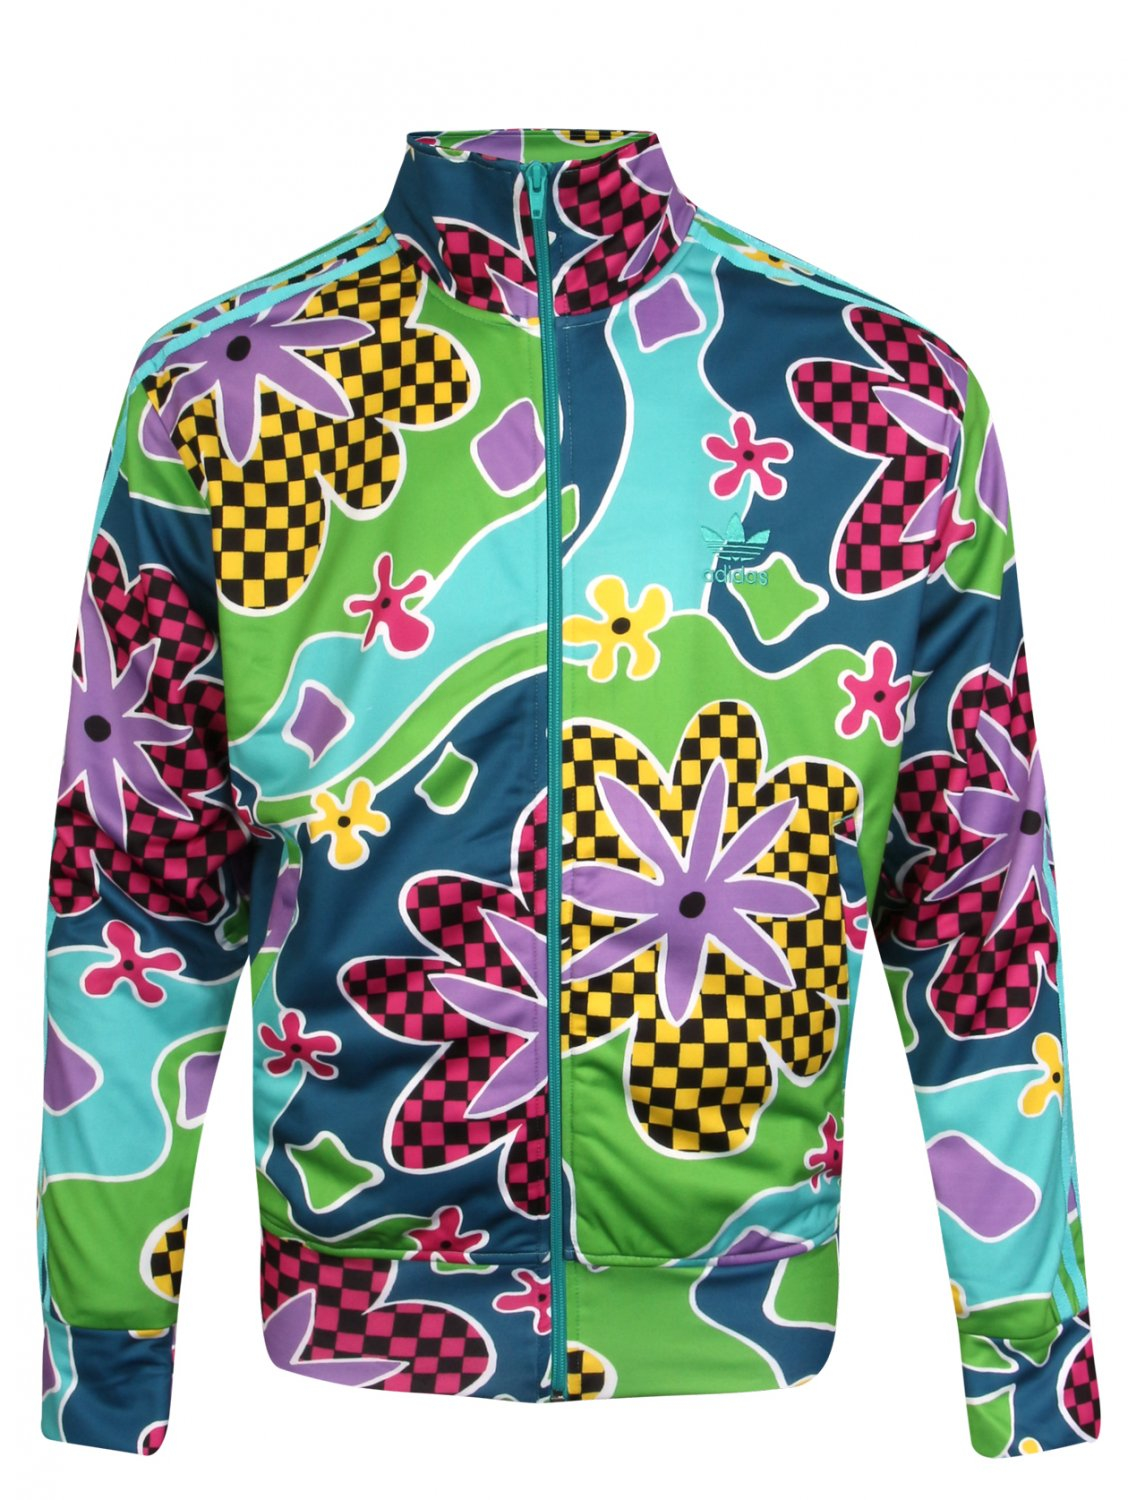 Jeremy Scott X Adidas Psychedelic Floral Shellsuit Jacket for Men - Lyst cfcbbd30b